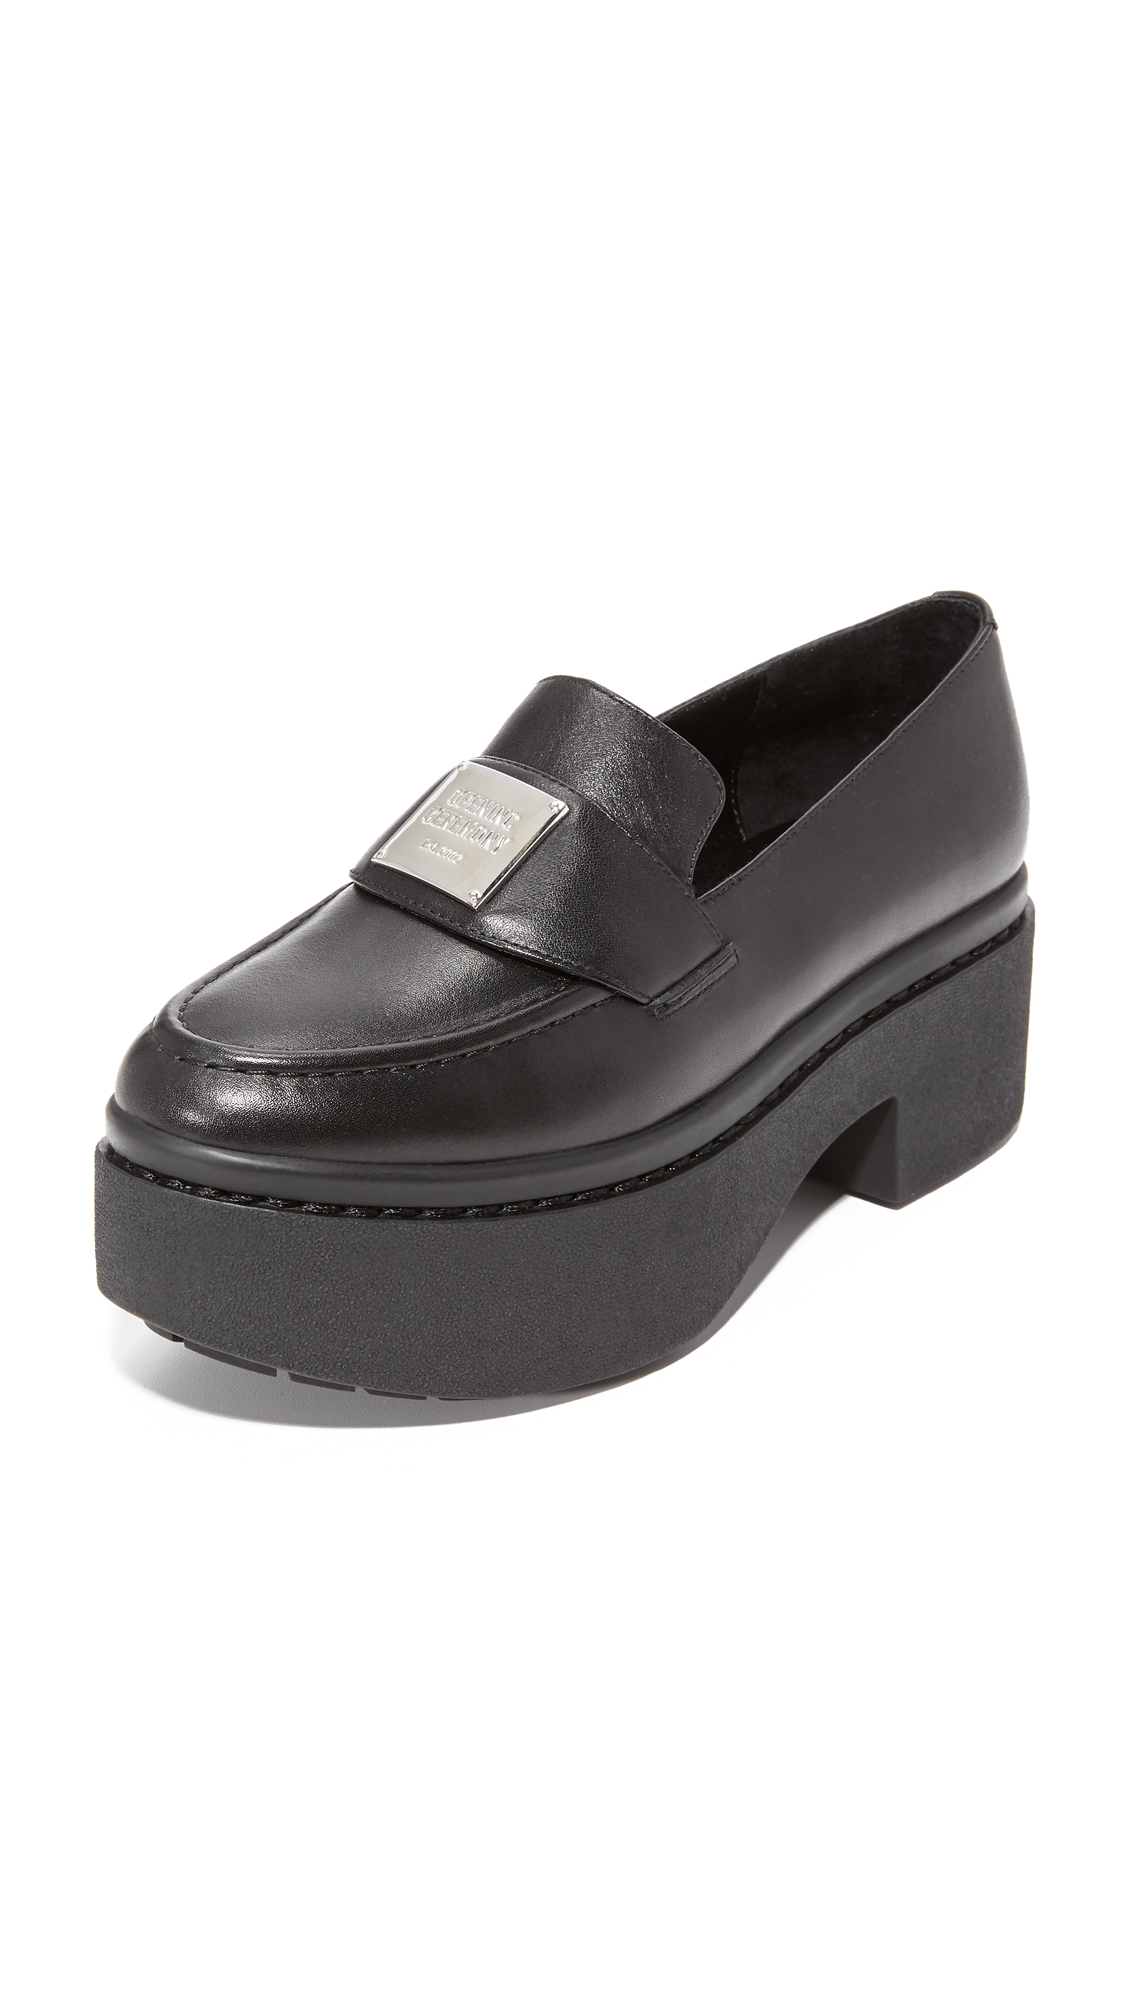 Photo of Opening Ceremony Agnees Platform Loafers Black - Opening Ceremony online